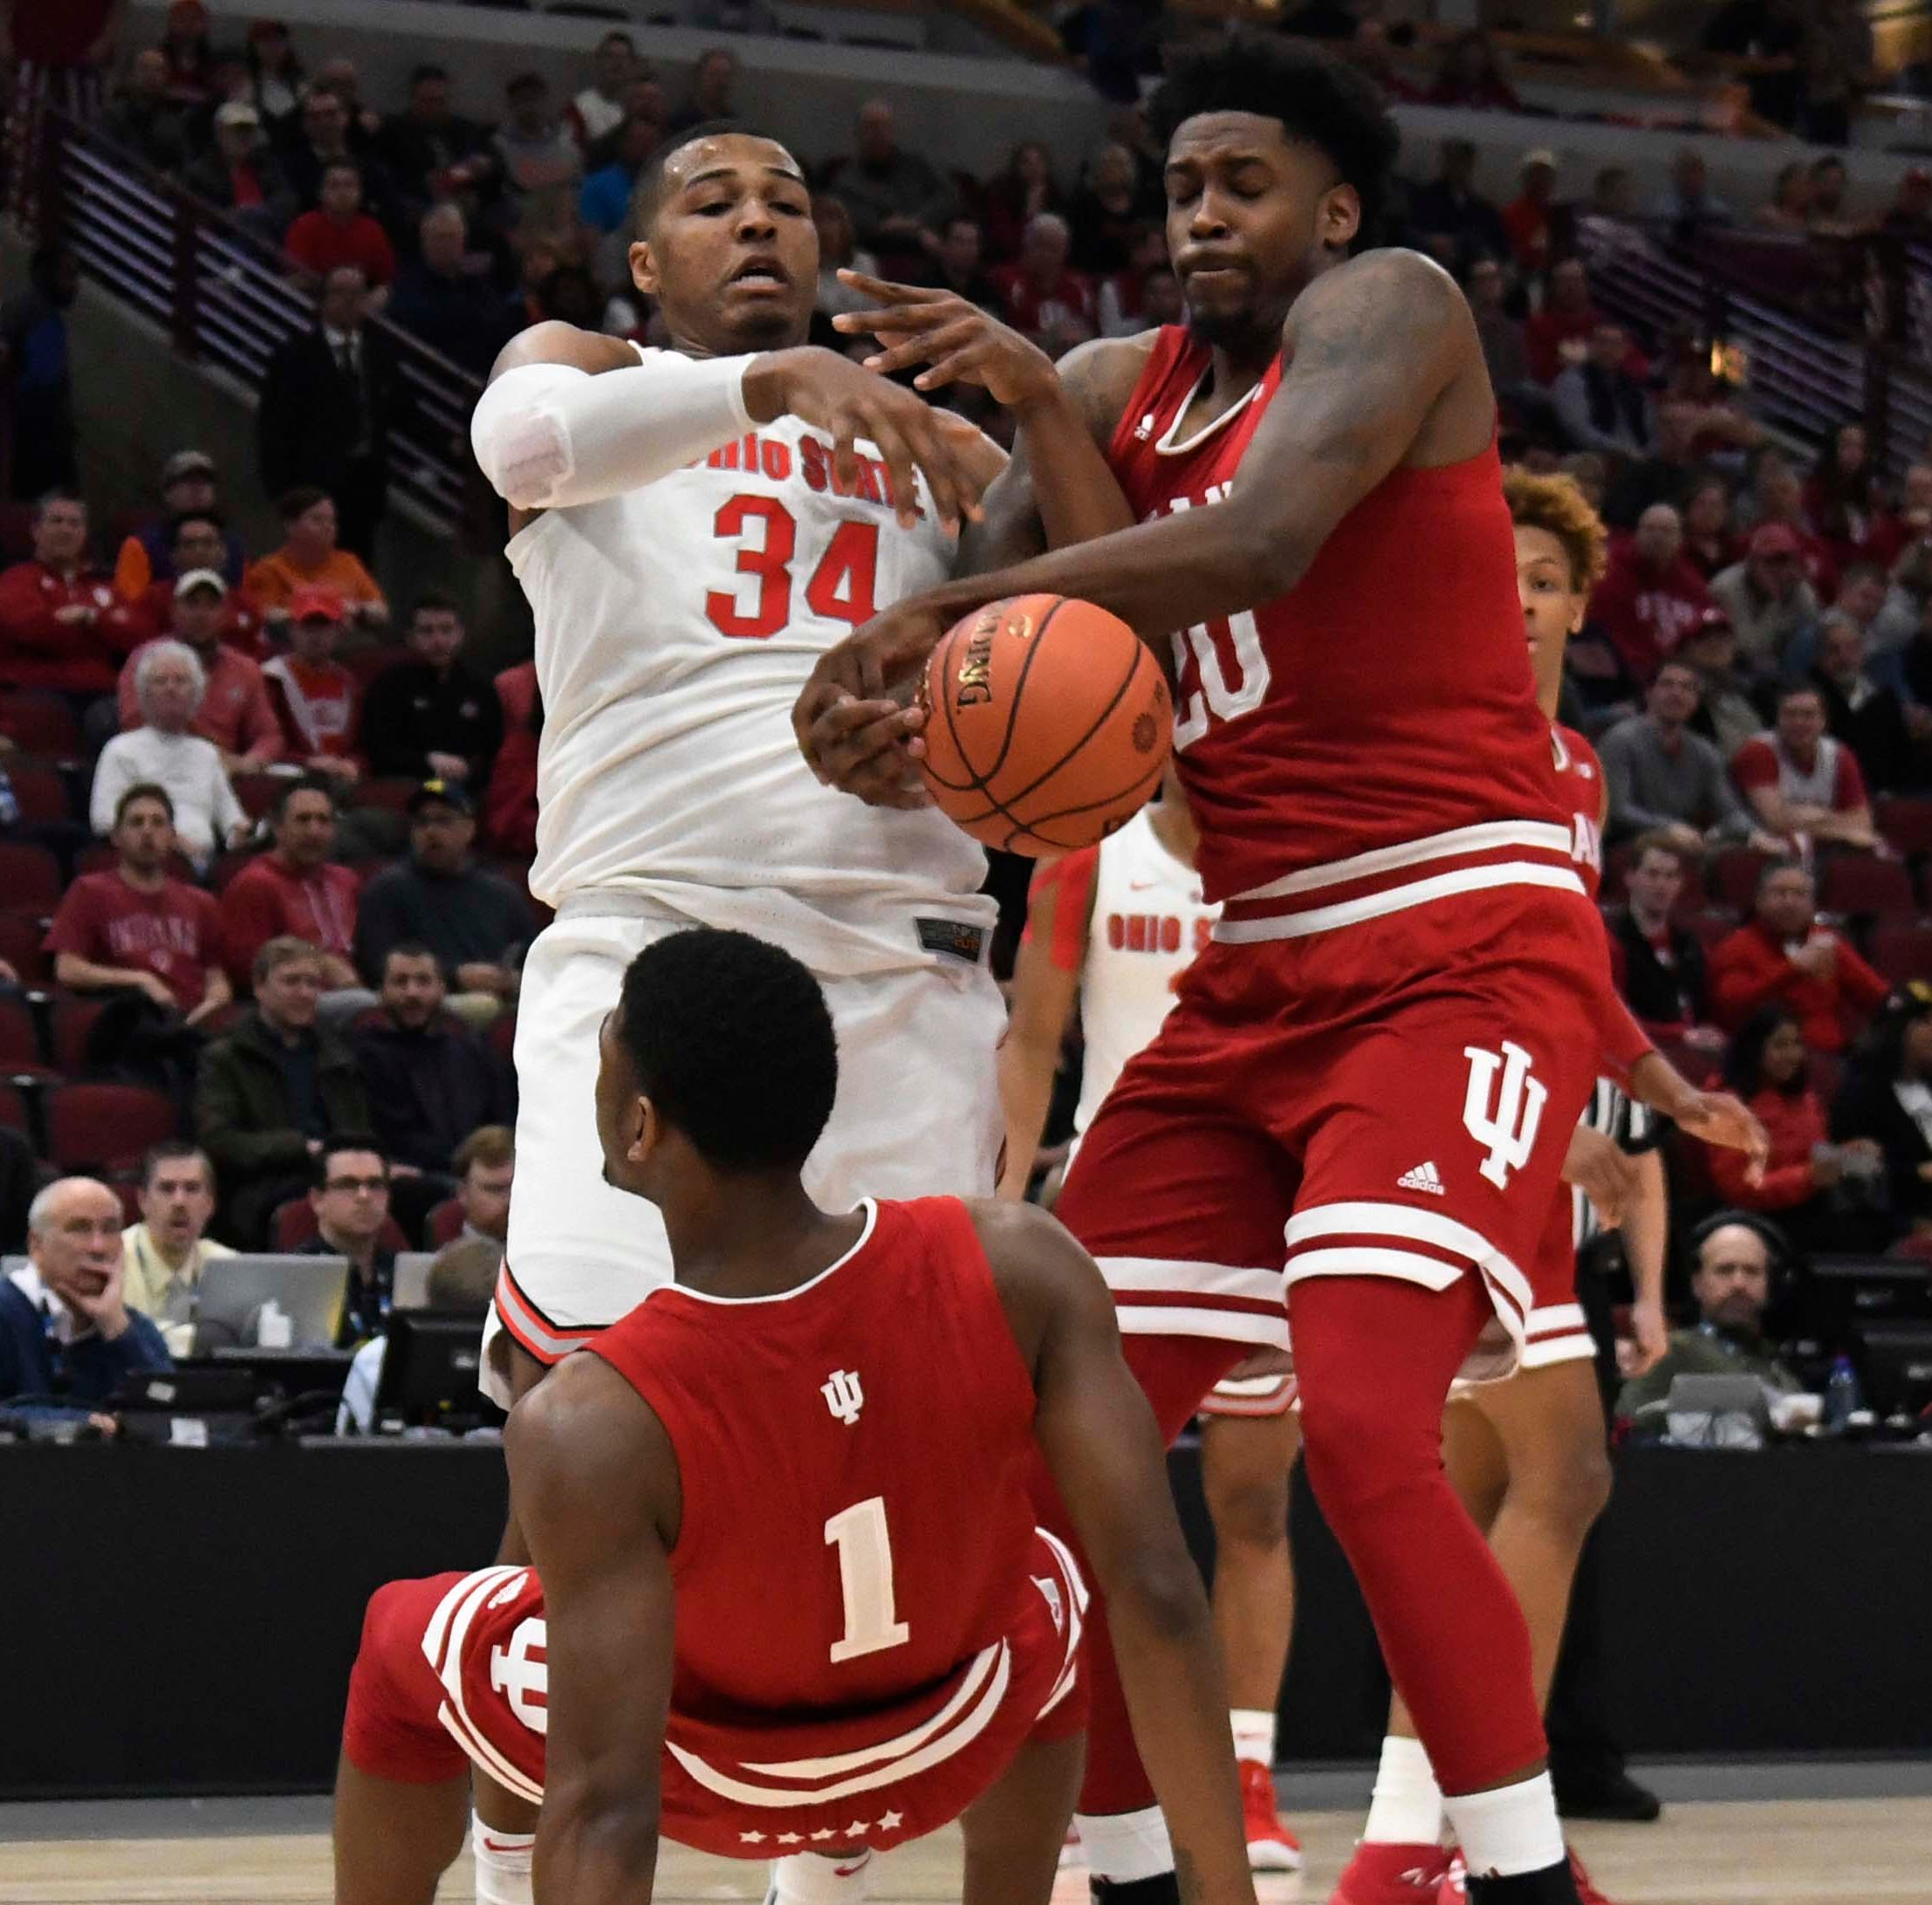 Buzzer breakdown: IU rally falls short as Hoosiers likely play their off NCAA tournament bubble